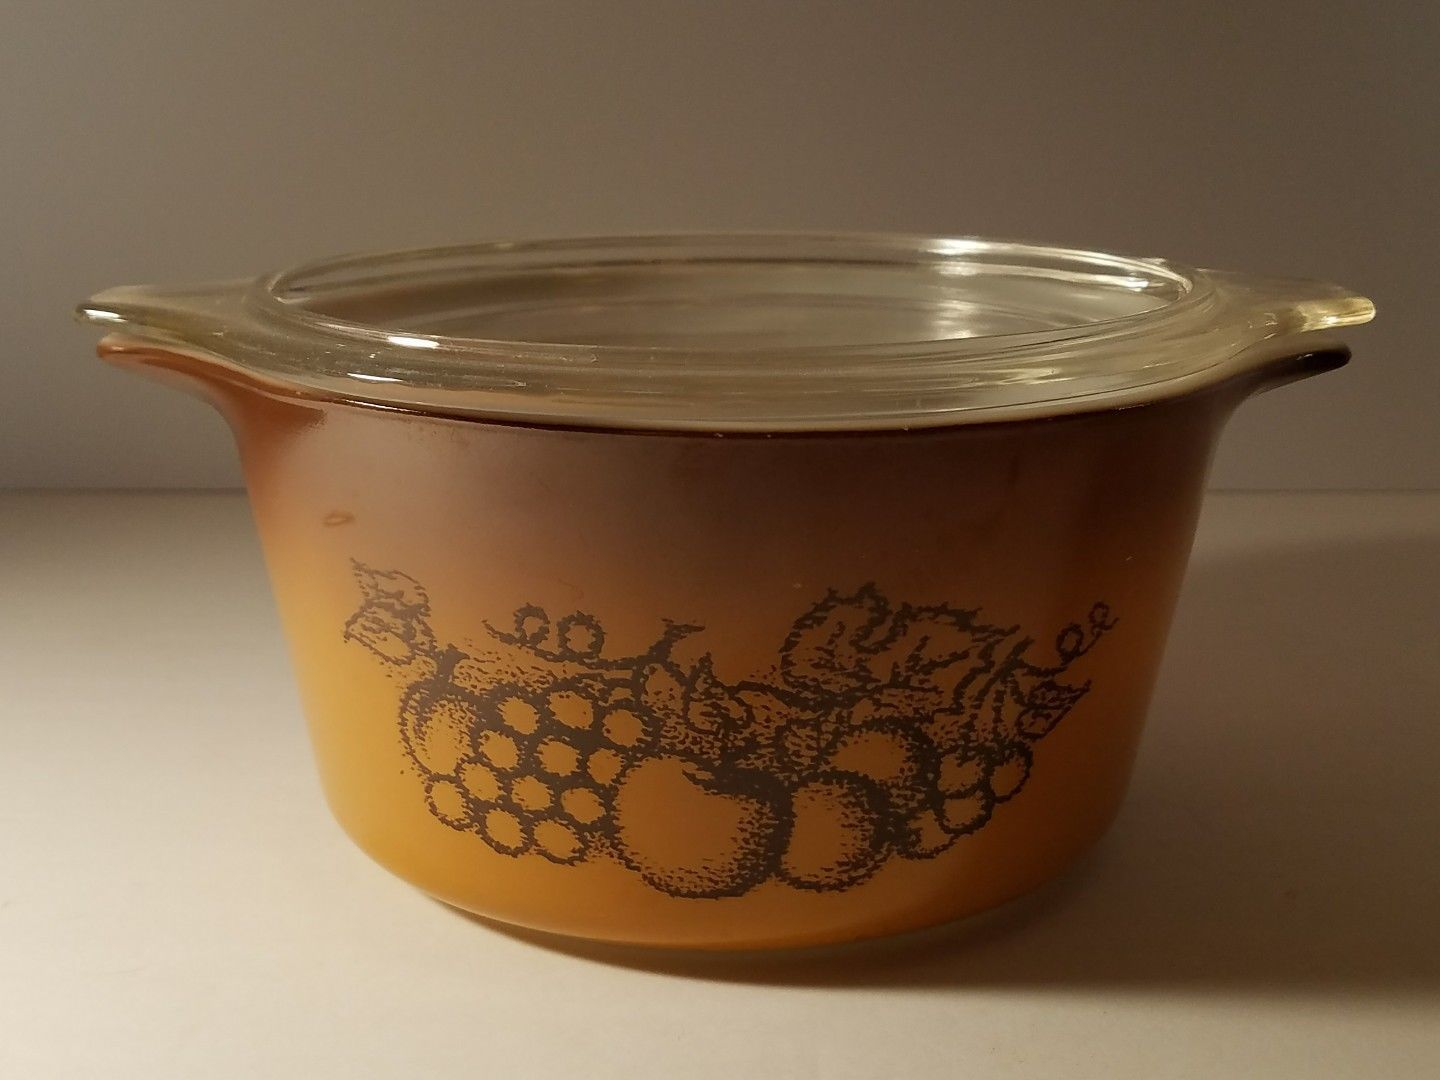 Vintage Pyrex Ovenware Old Orchard Casserole and 24 similar items. S l1600